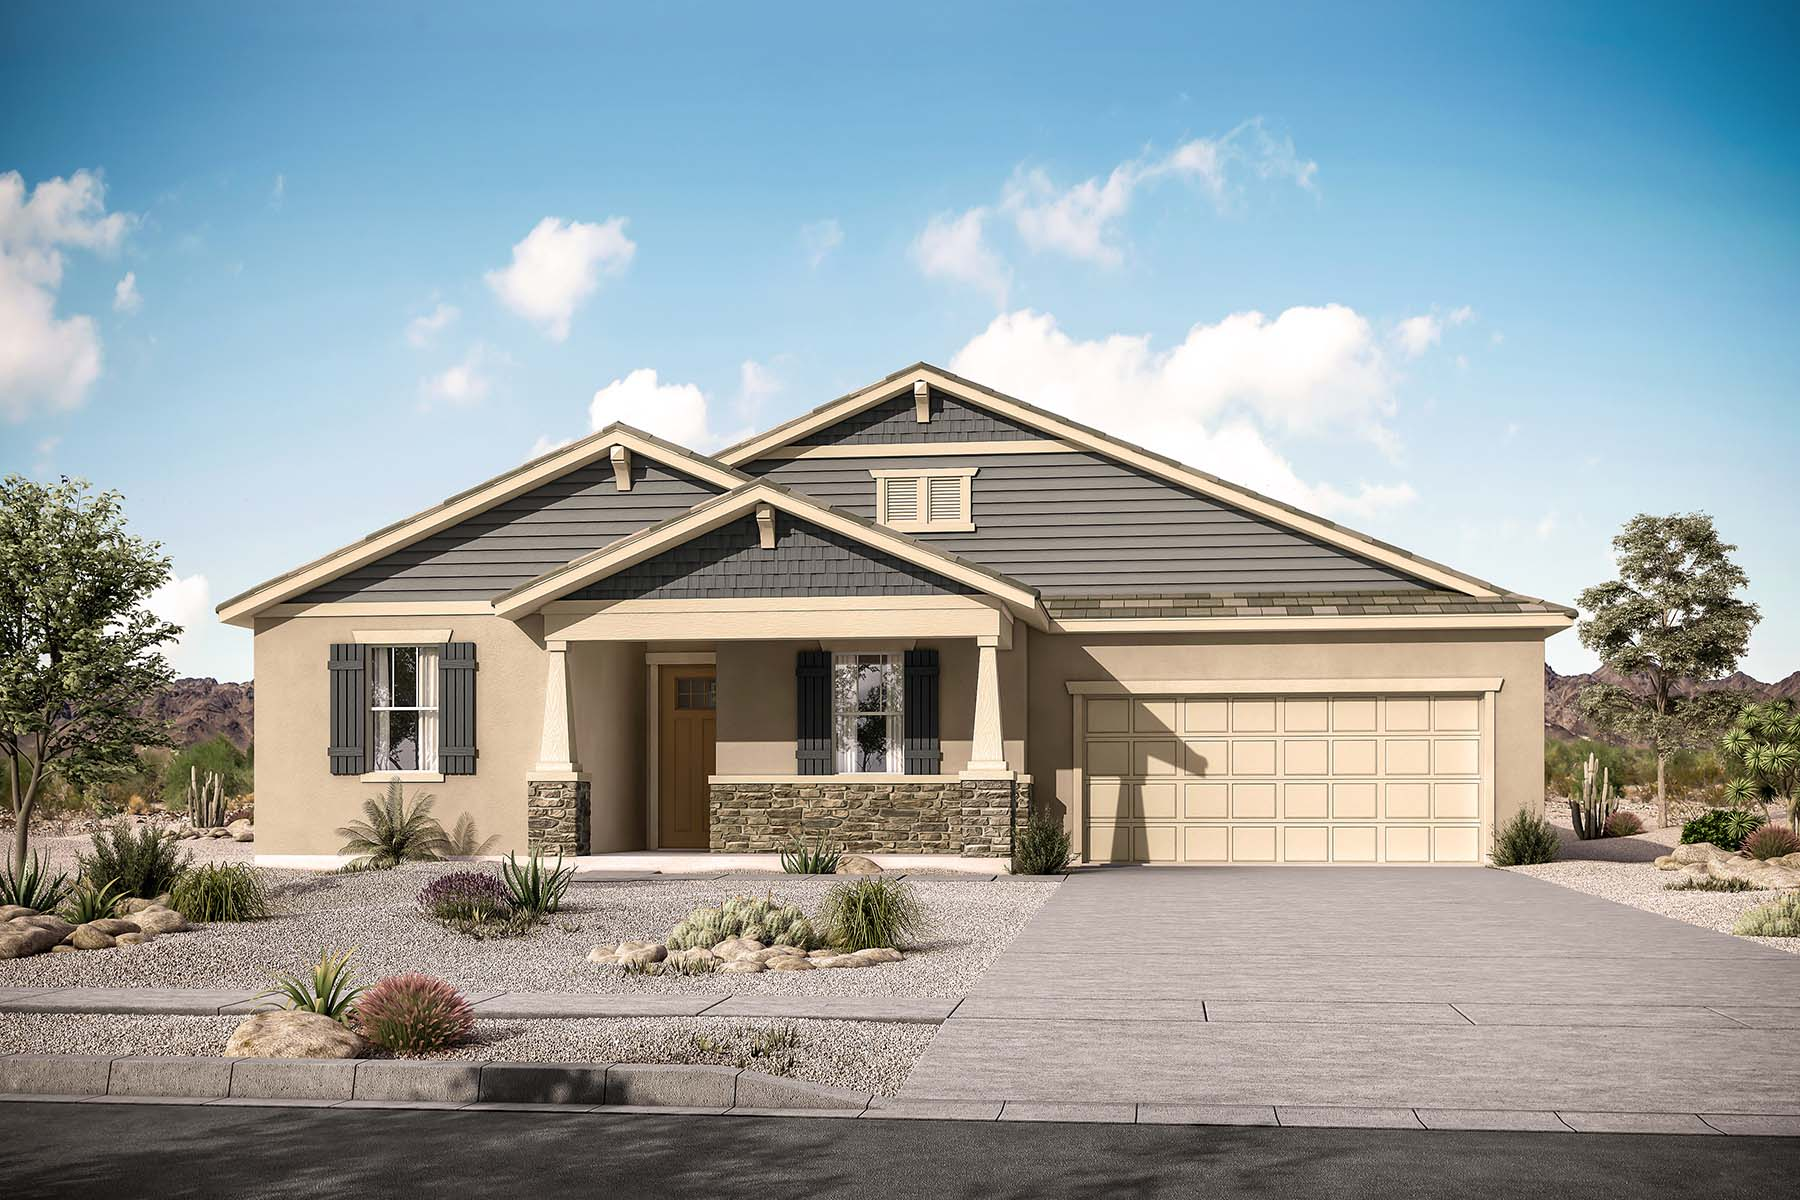 Kensington Plan  at Roosevelt Park in Avondale Arizona by Mattamy Homes